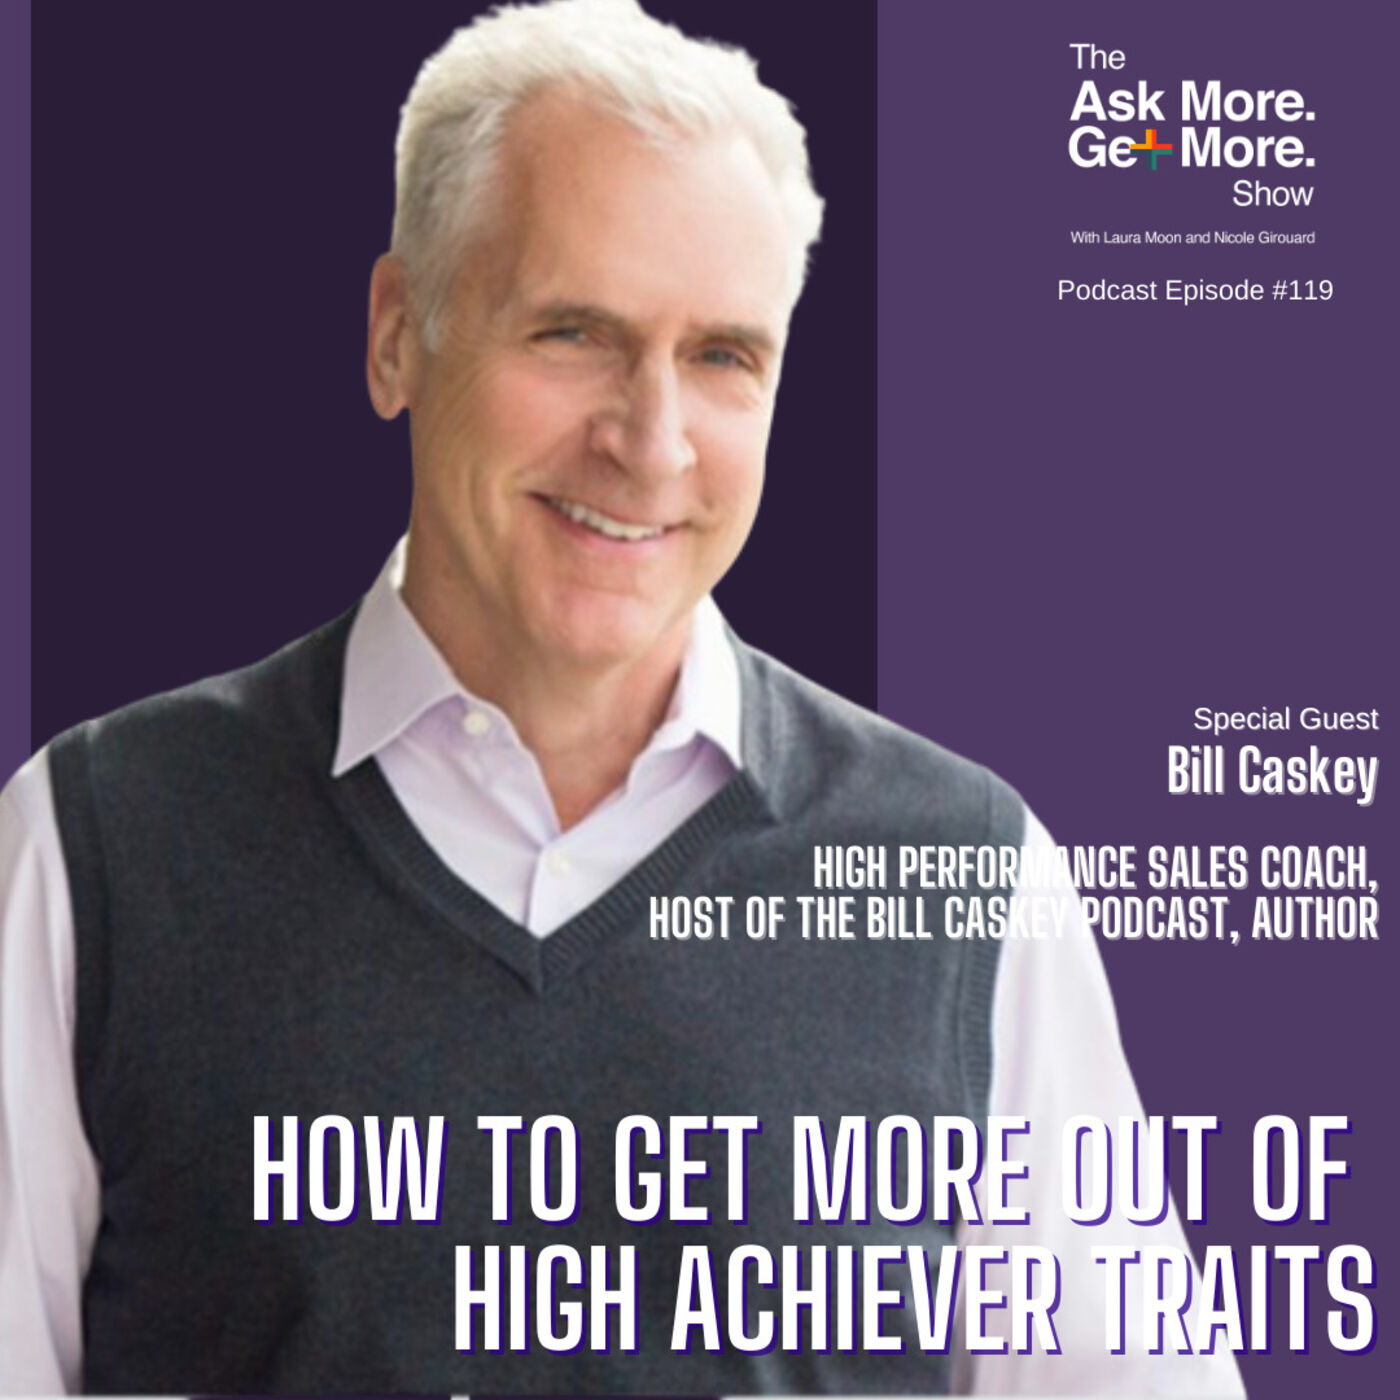 How to Get More Out of High Achiever Traits [Bill Caskey]